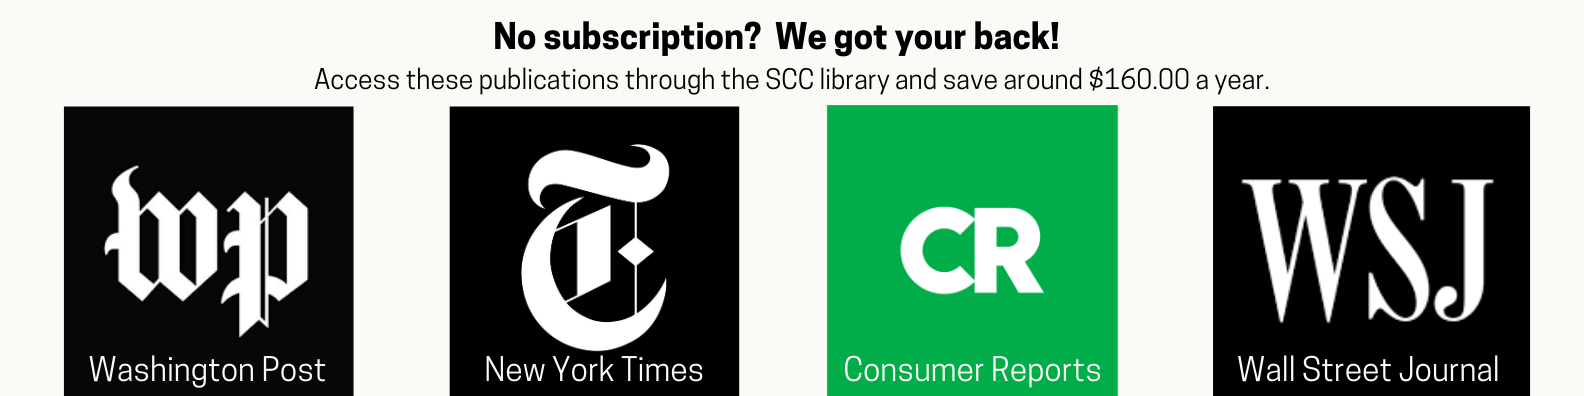 Free access to newspapers